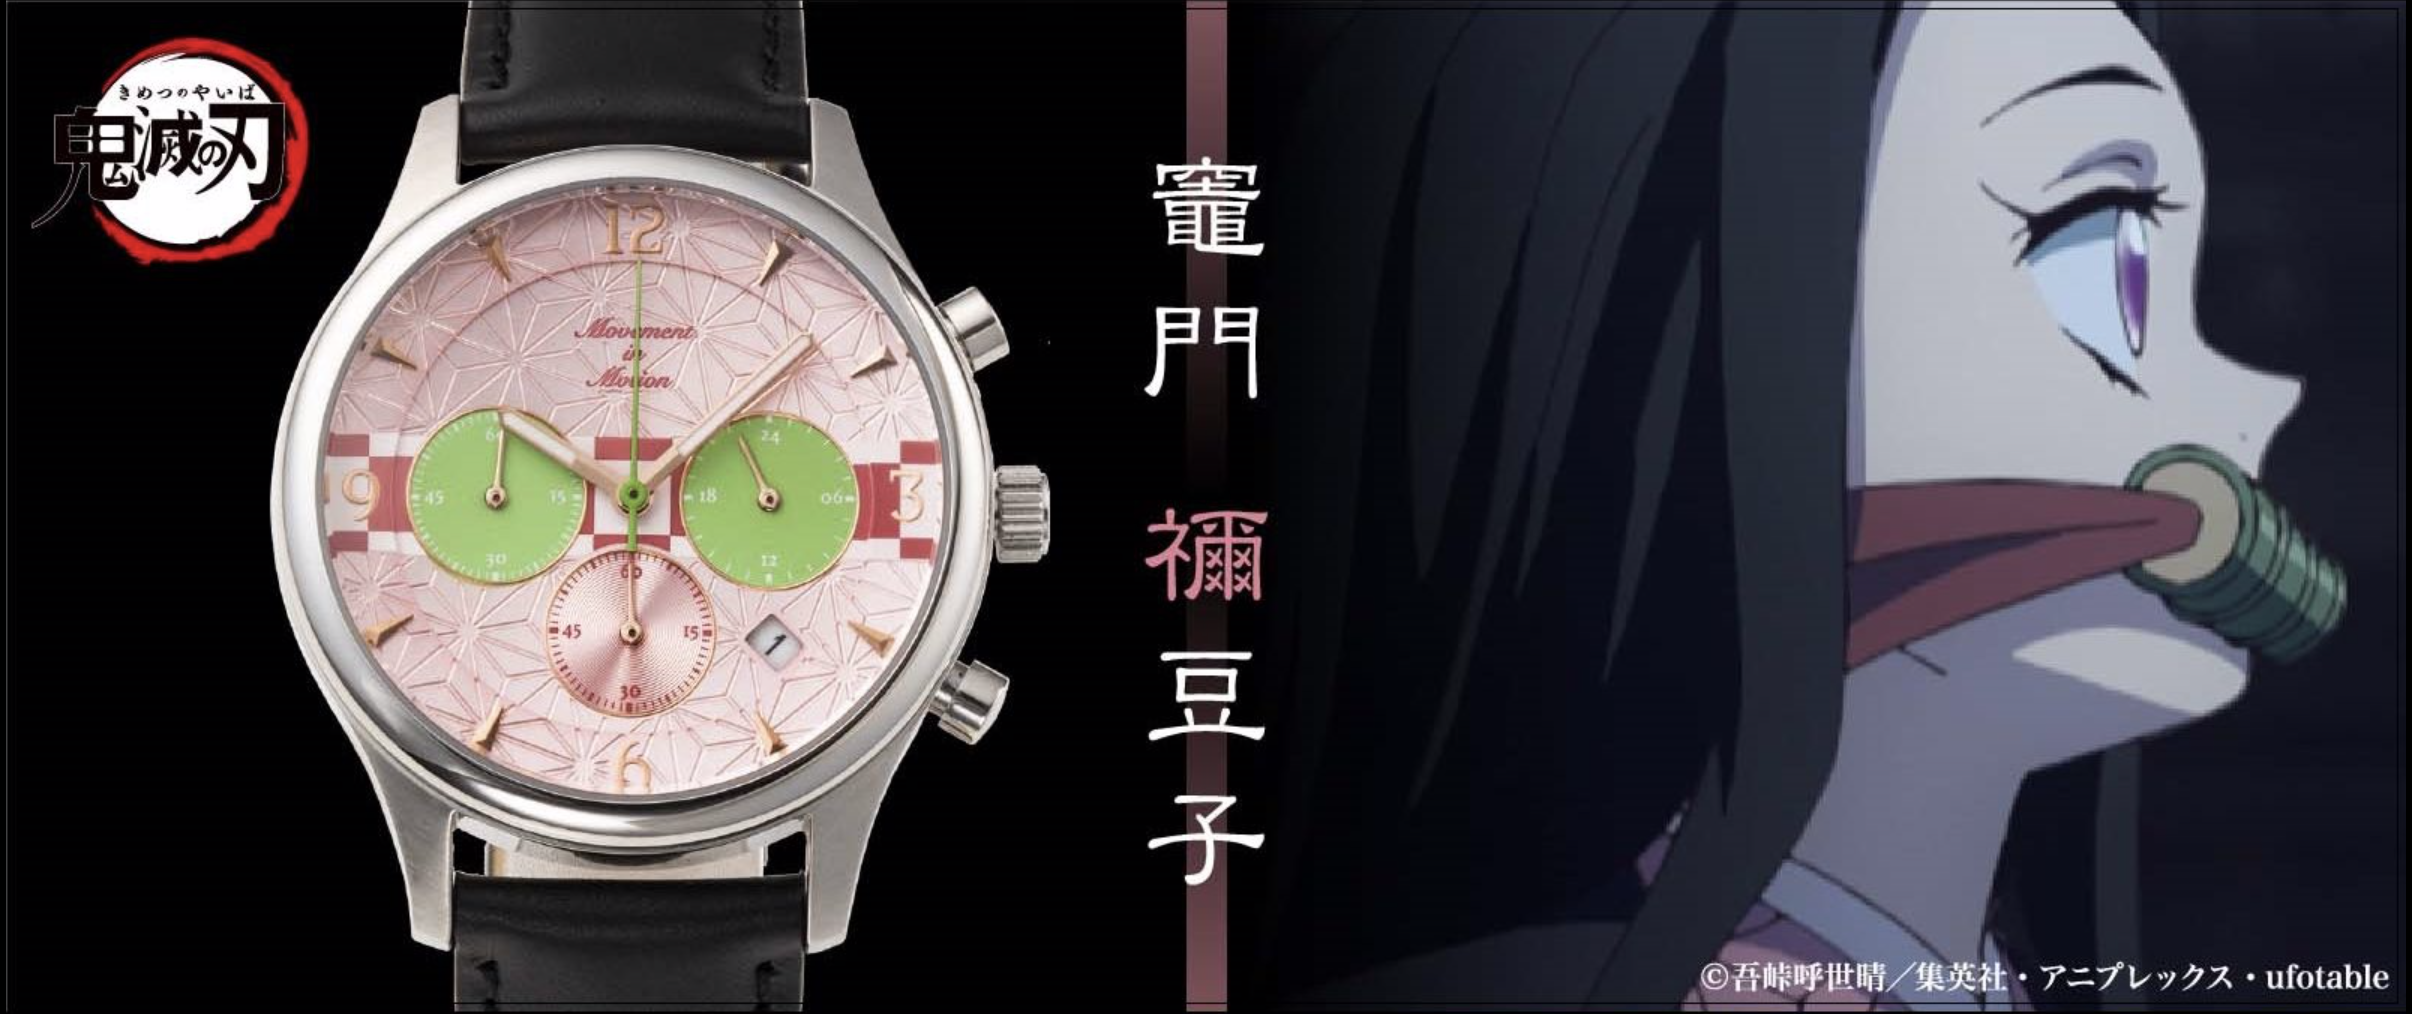 Nezuko watch